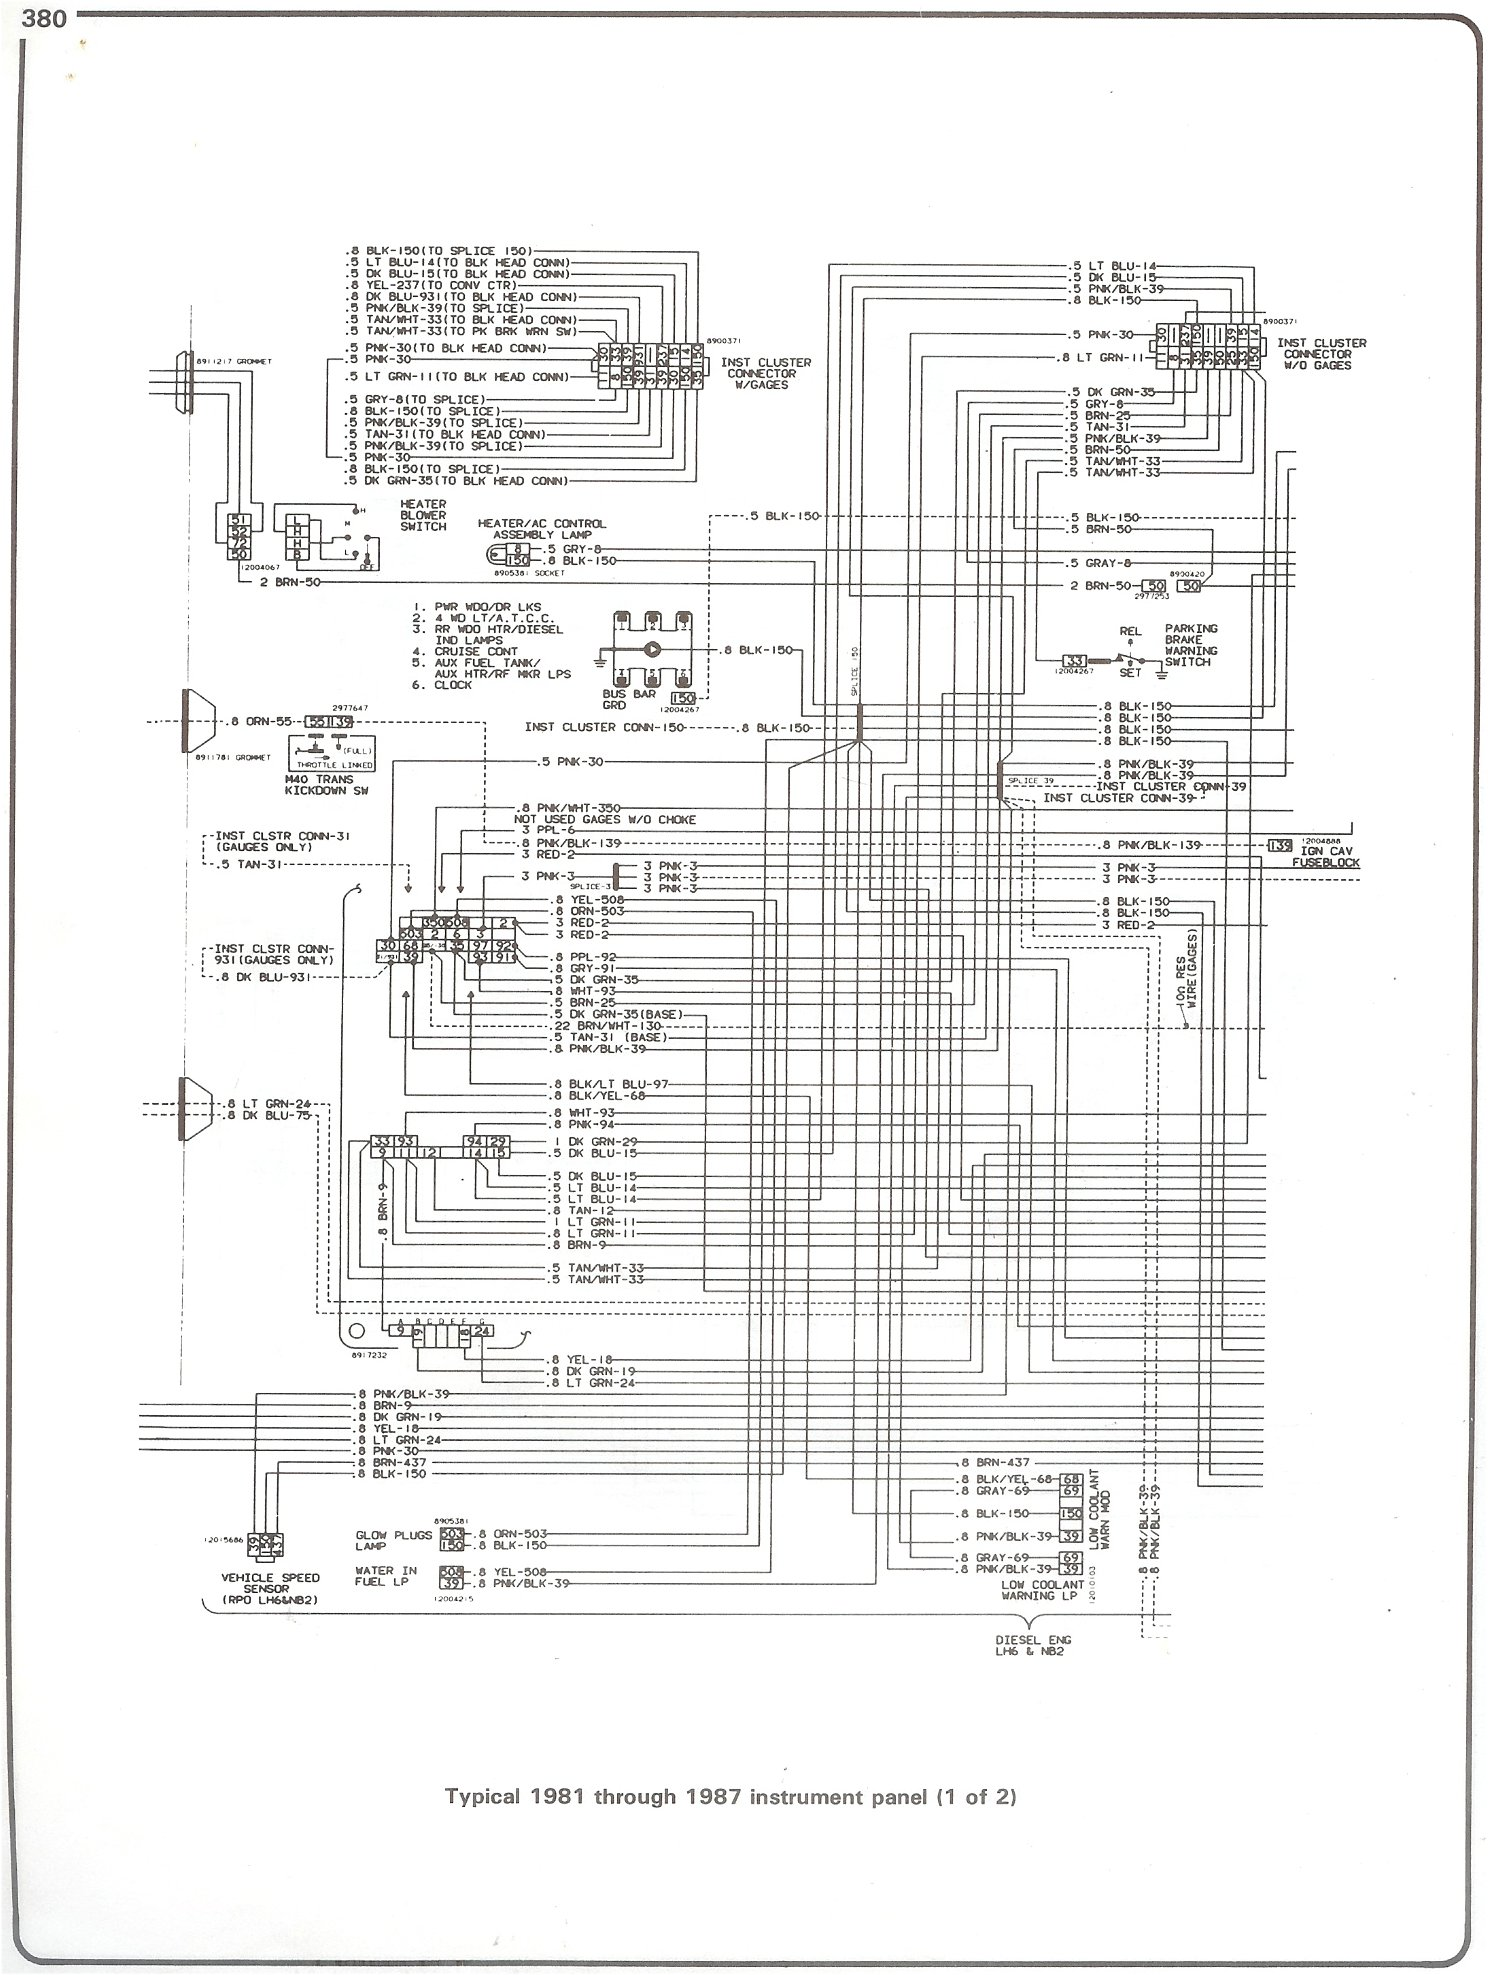 Wiring Diagram 85 Chevy 350 | Wiring Diagram on 1965 chevrolet truck wiring diagram, 1976 chevrolet truck wiring diagram, 1962 chevrolet truck wiring diagram, 1977 chevrolet truck brochure, 1971 chevrolet truck wiring diagram, 1977 chevrolet truck parts, 1956 chevrolet truck wiring diagram, 1977 chevrolet g30 camper van, 1954 chevrolet truck wiring diagram, 1948 chevrolet truck wiring diagram, 1959 chevrolet truck wiring diagram, 1929 chevrolet truck wiring diagram, 1969 chevrolet truck wiring diagram, 1968 chevrolet truck wiring diagram, 1979 chevrolet truck wiring diagram, 1974 chevrolet truck wiring diagram, 1996 chevrolet truck wiring diagram, 1957 chevrolet truck wiring diagram, 1998 chevrolet truck wiring diagram, 1972 chevrolet truck wiring diagram,